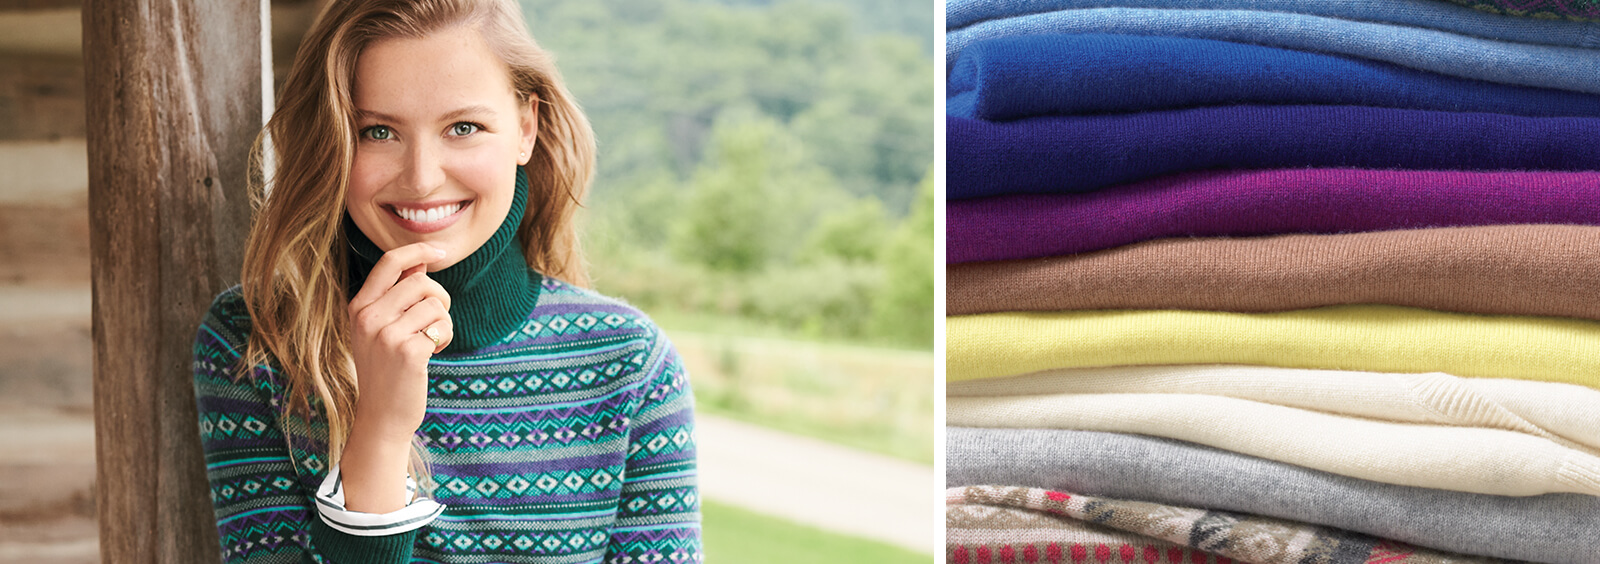 Cashmere Luxury Sweaters: How to Shop and Care for Your Favorite Sweaters